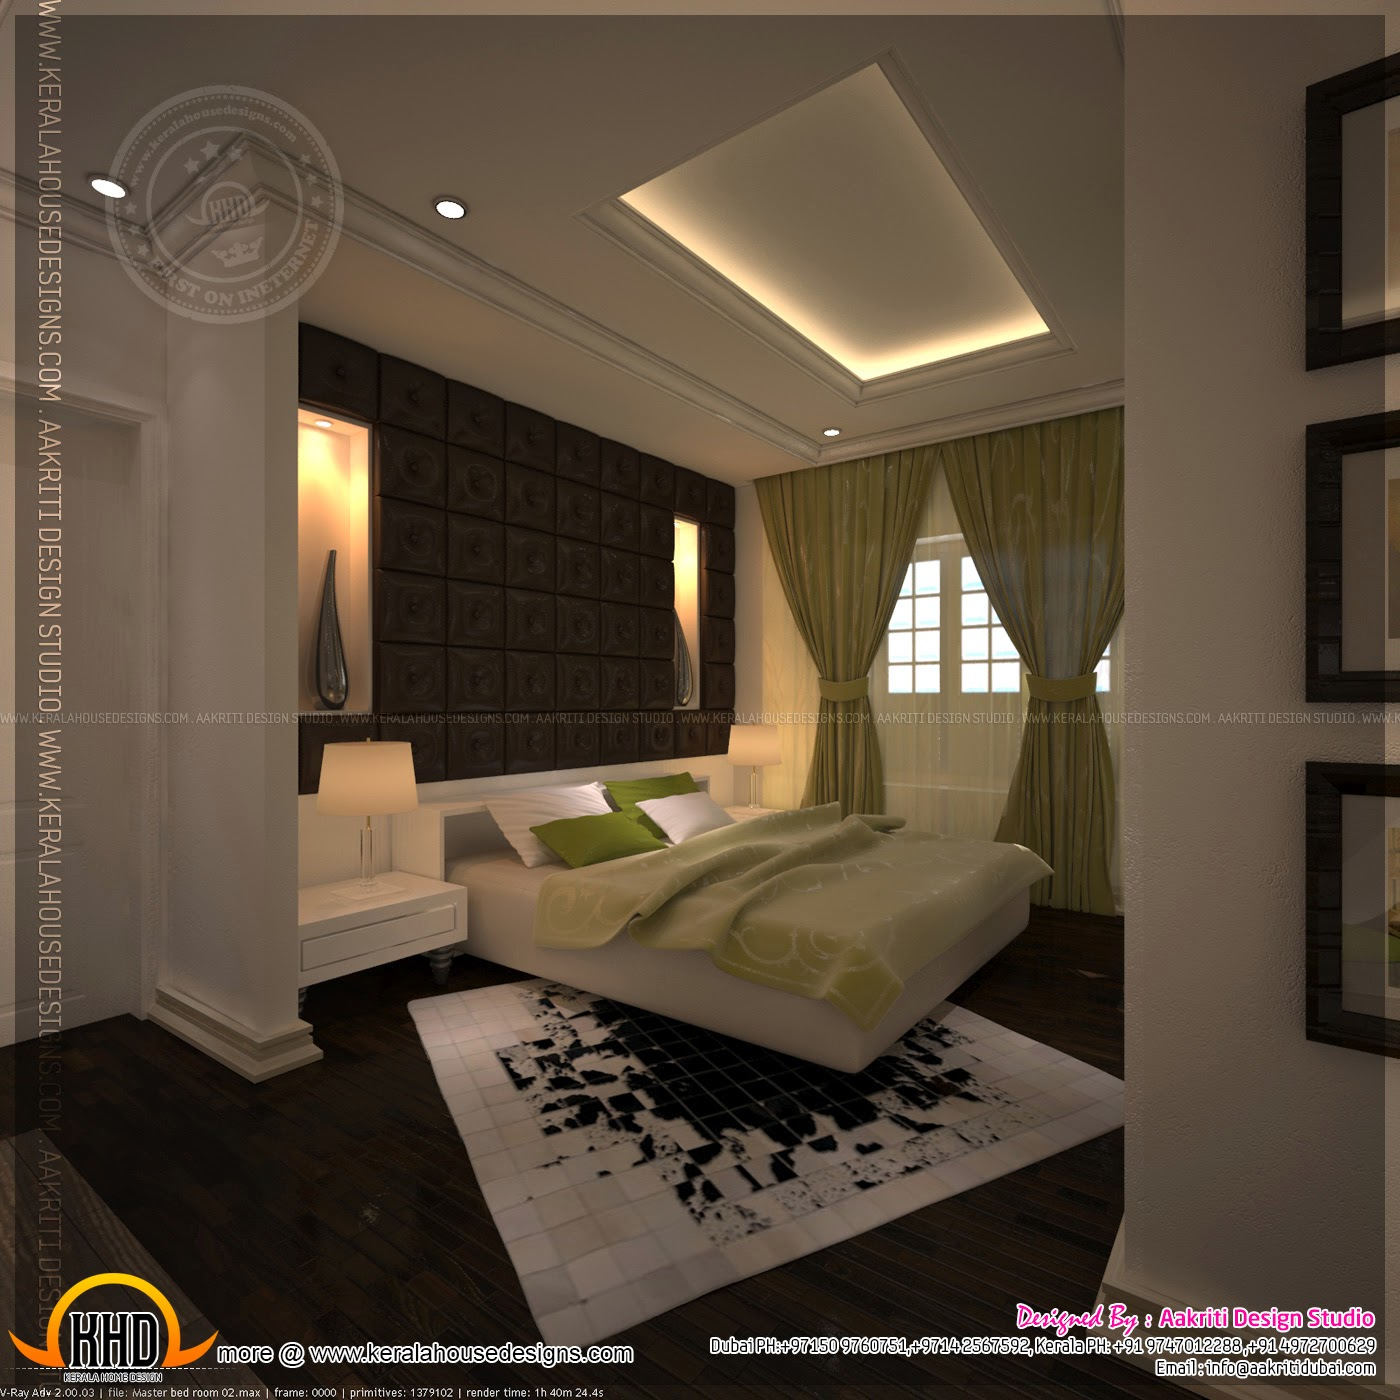 Bedroom Interior Design: Home Kerala Plans